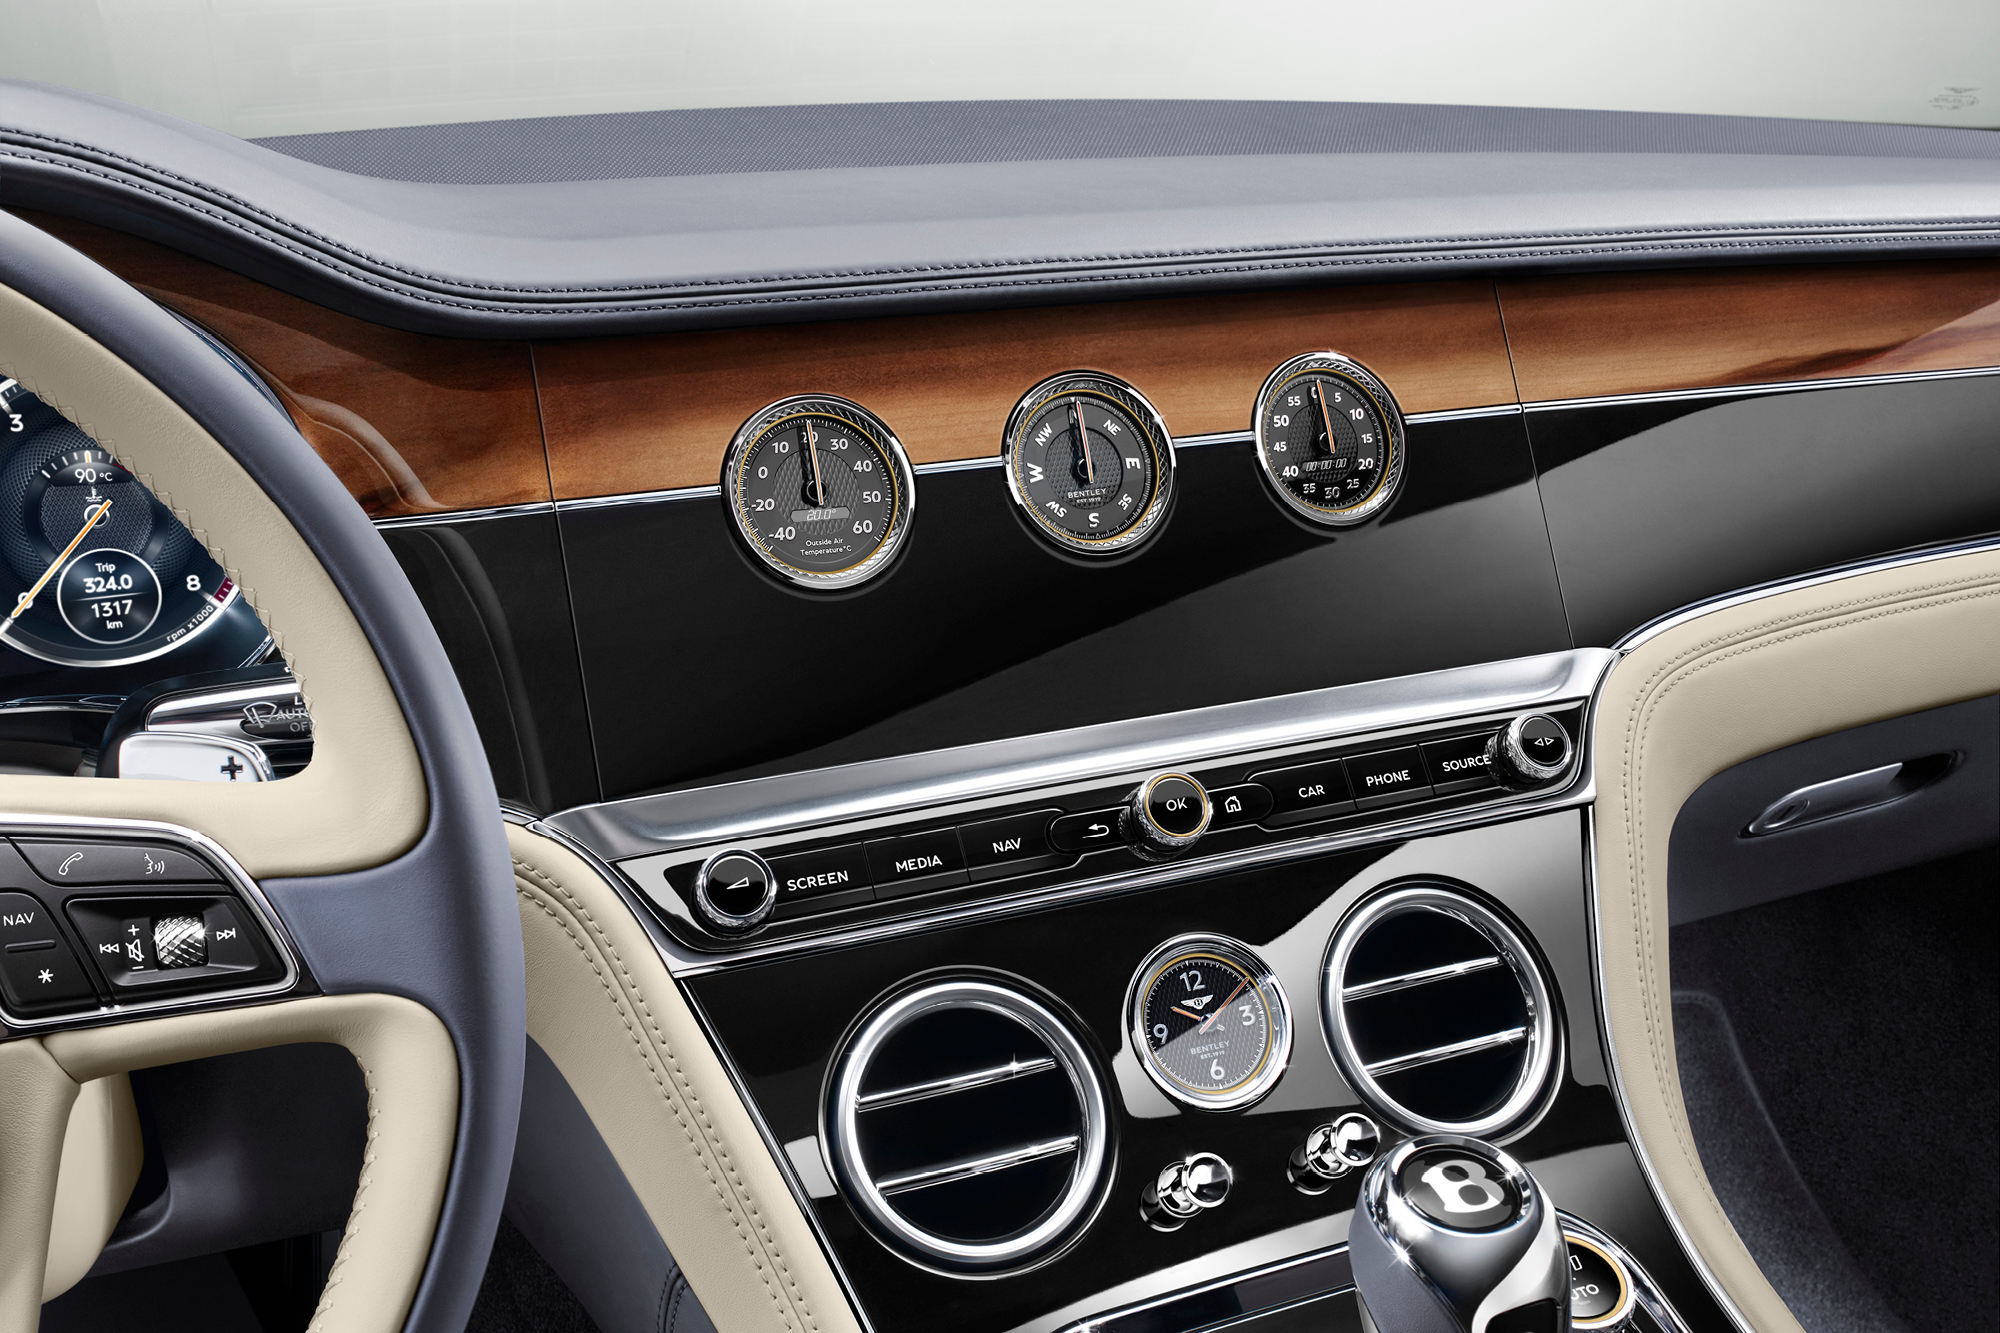 The Bentley Continental GT's rotating display gives the driver low-tech alternatives to the digital display